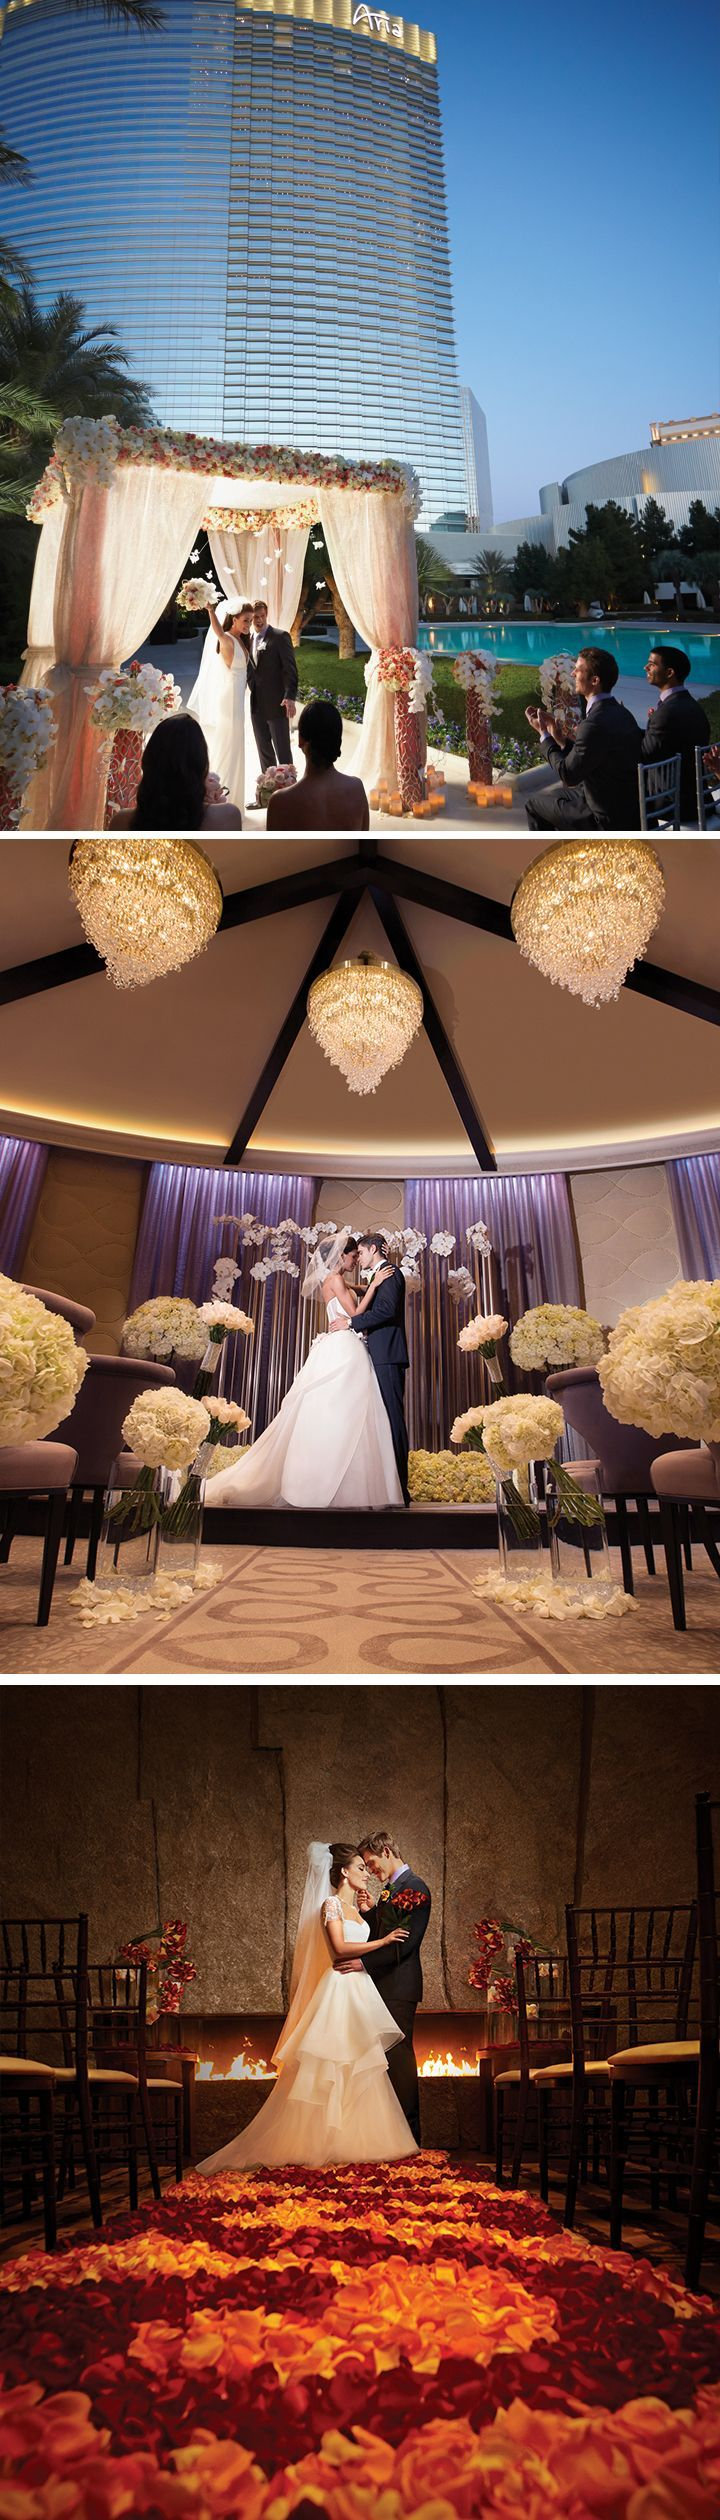 The ARIA Resort Casino Las Vegas Offers Many Options For Couples Looking To Have A Wedding Photo By